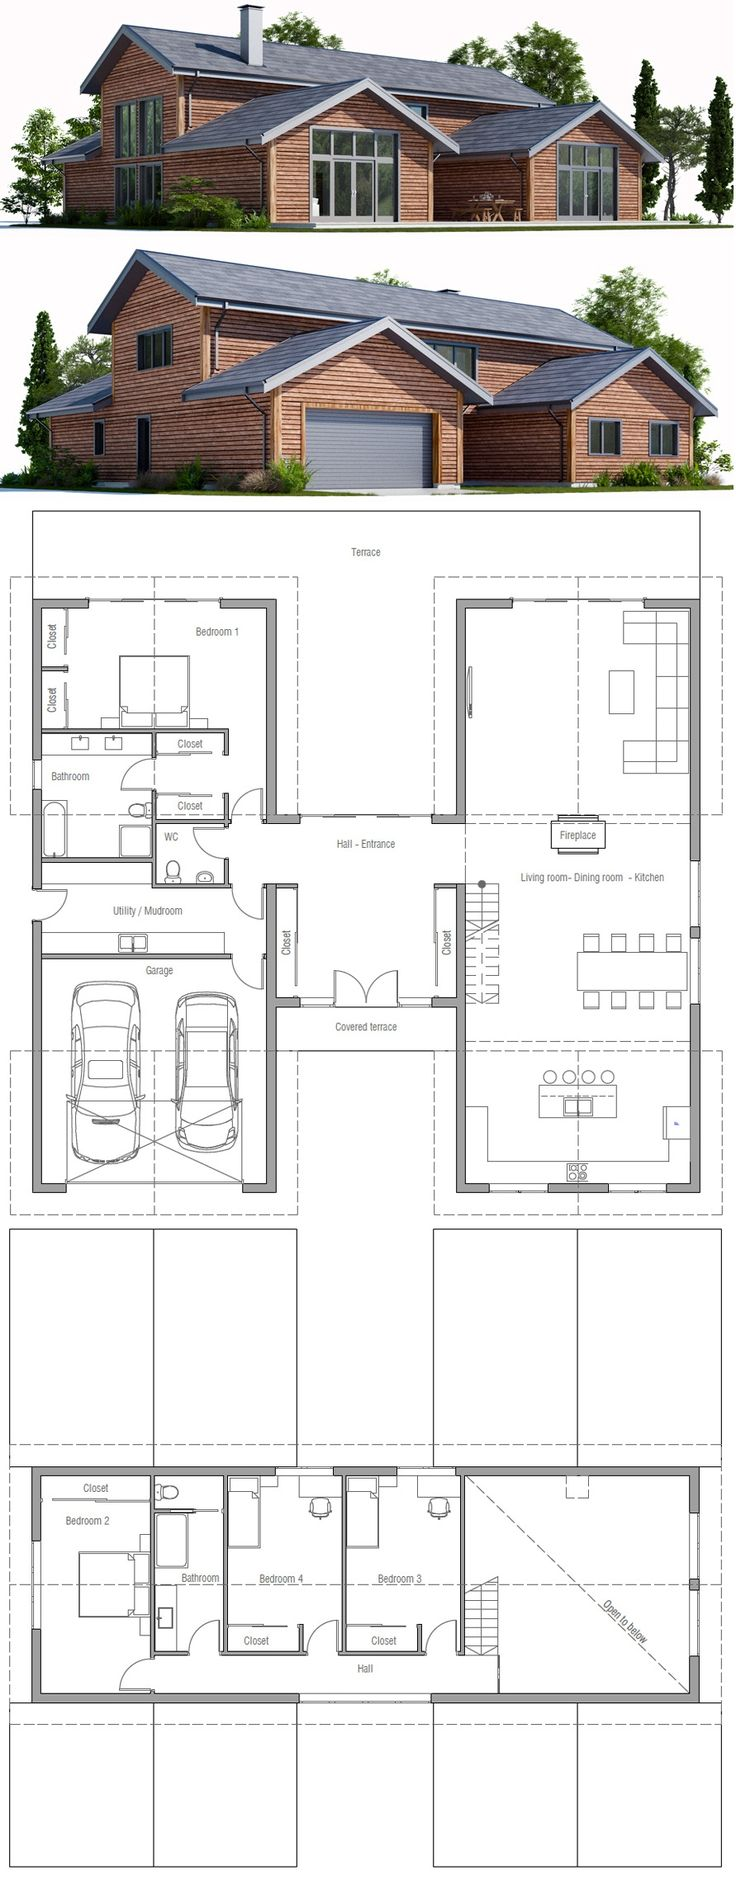 House Plan 325 best House Plans images